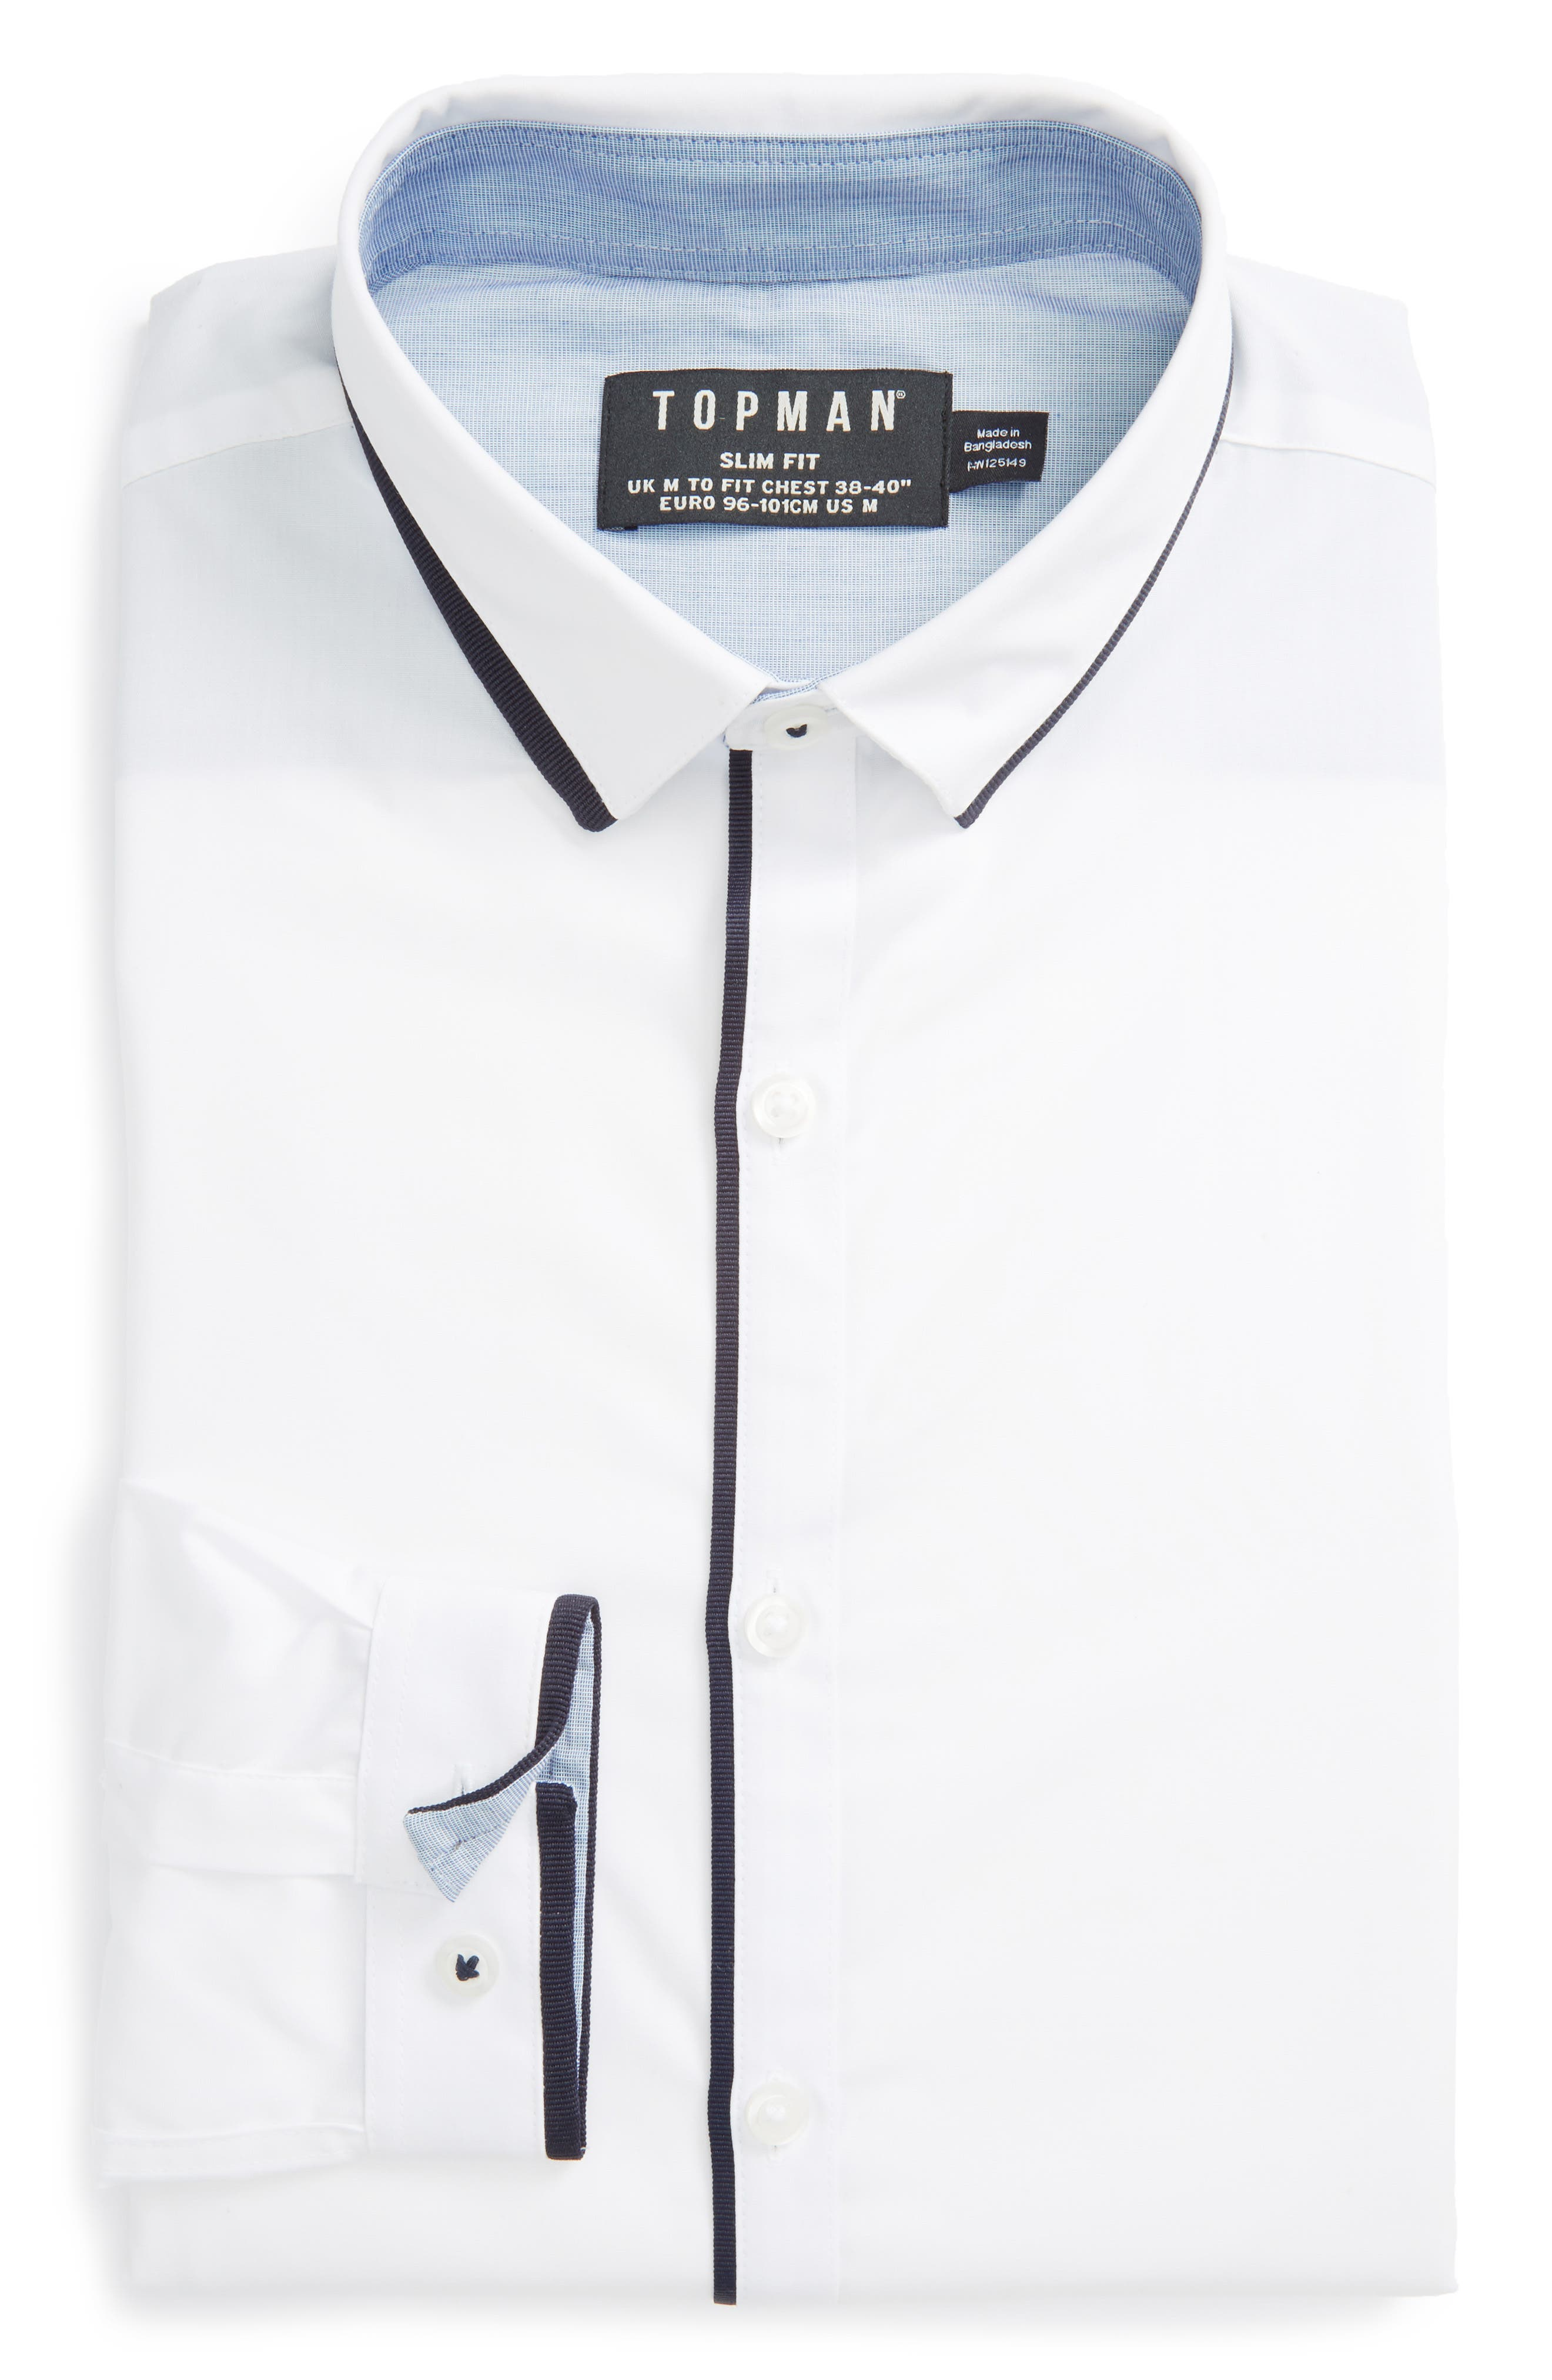 TOPMAN White Contrast Dress Shirt